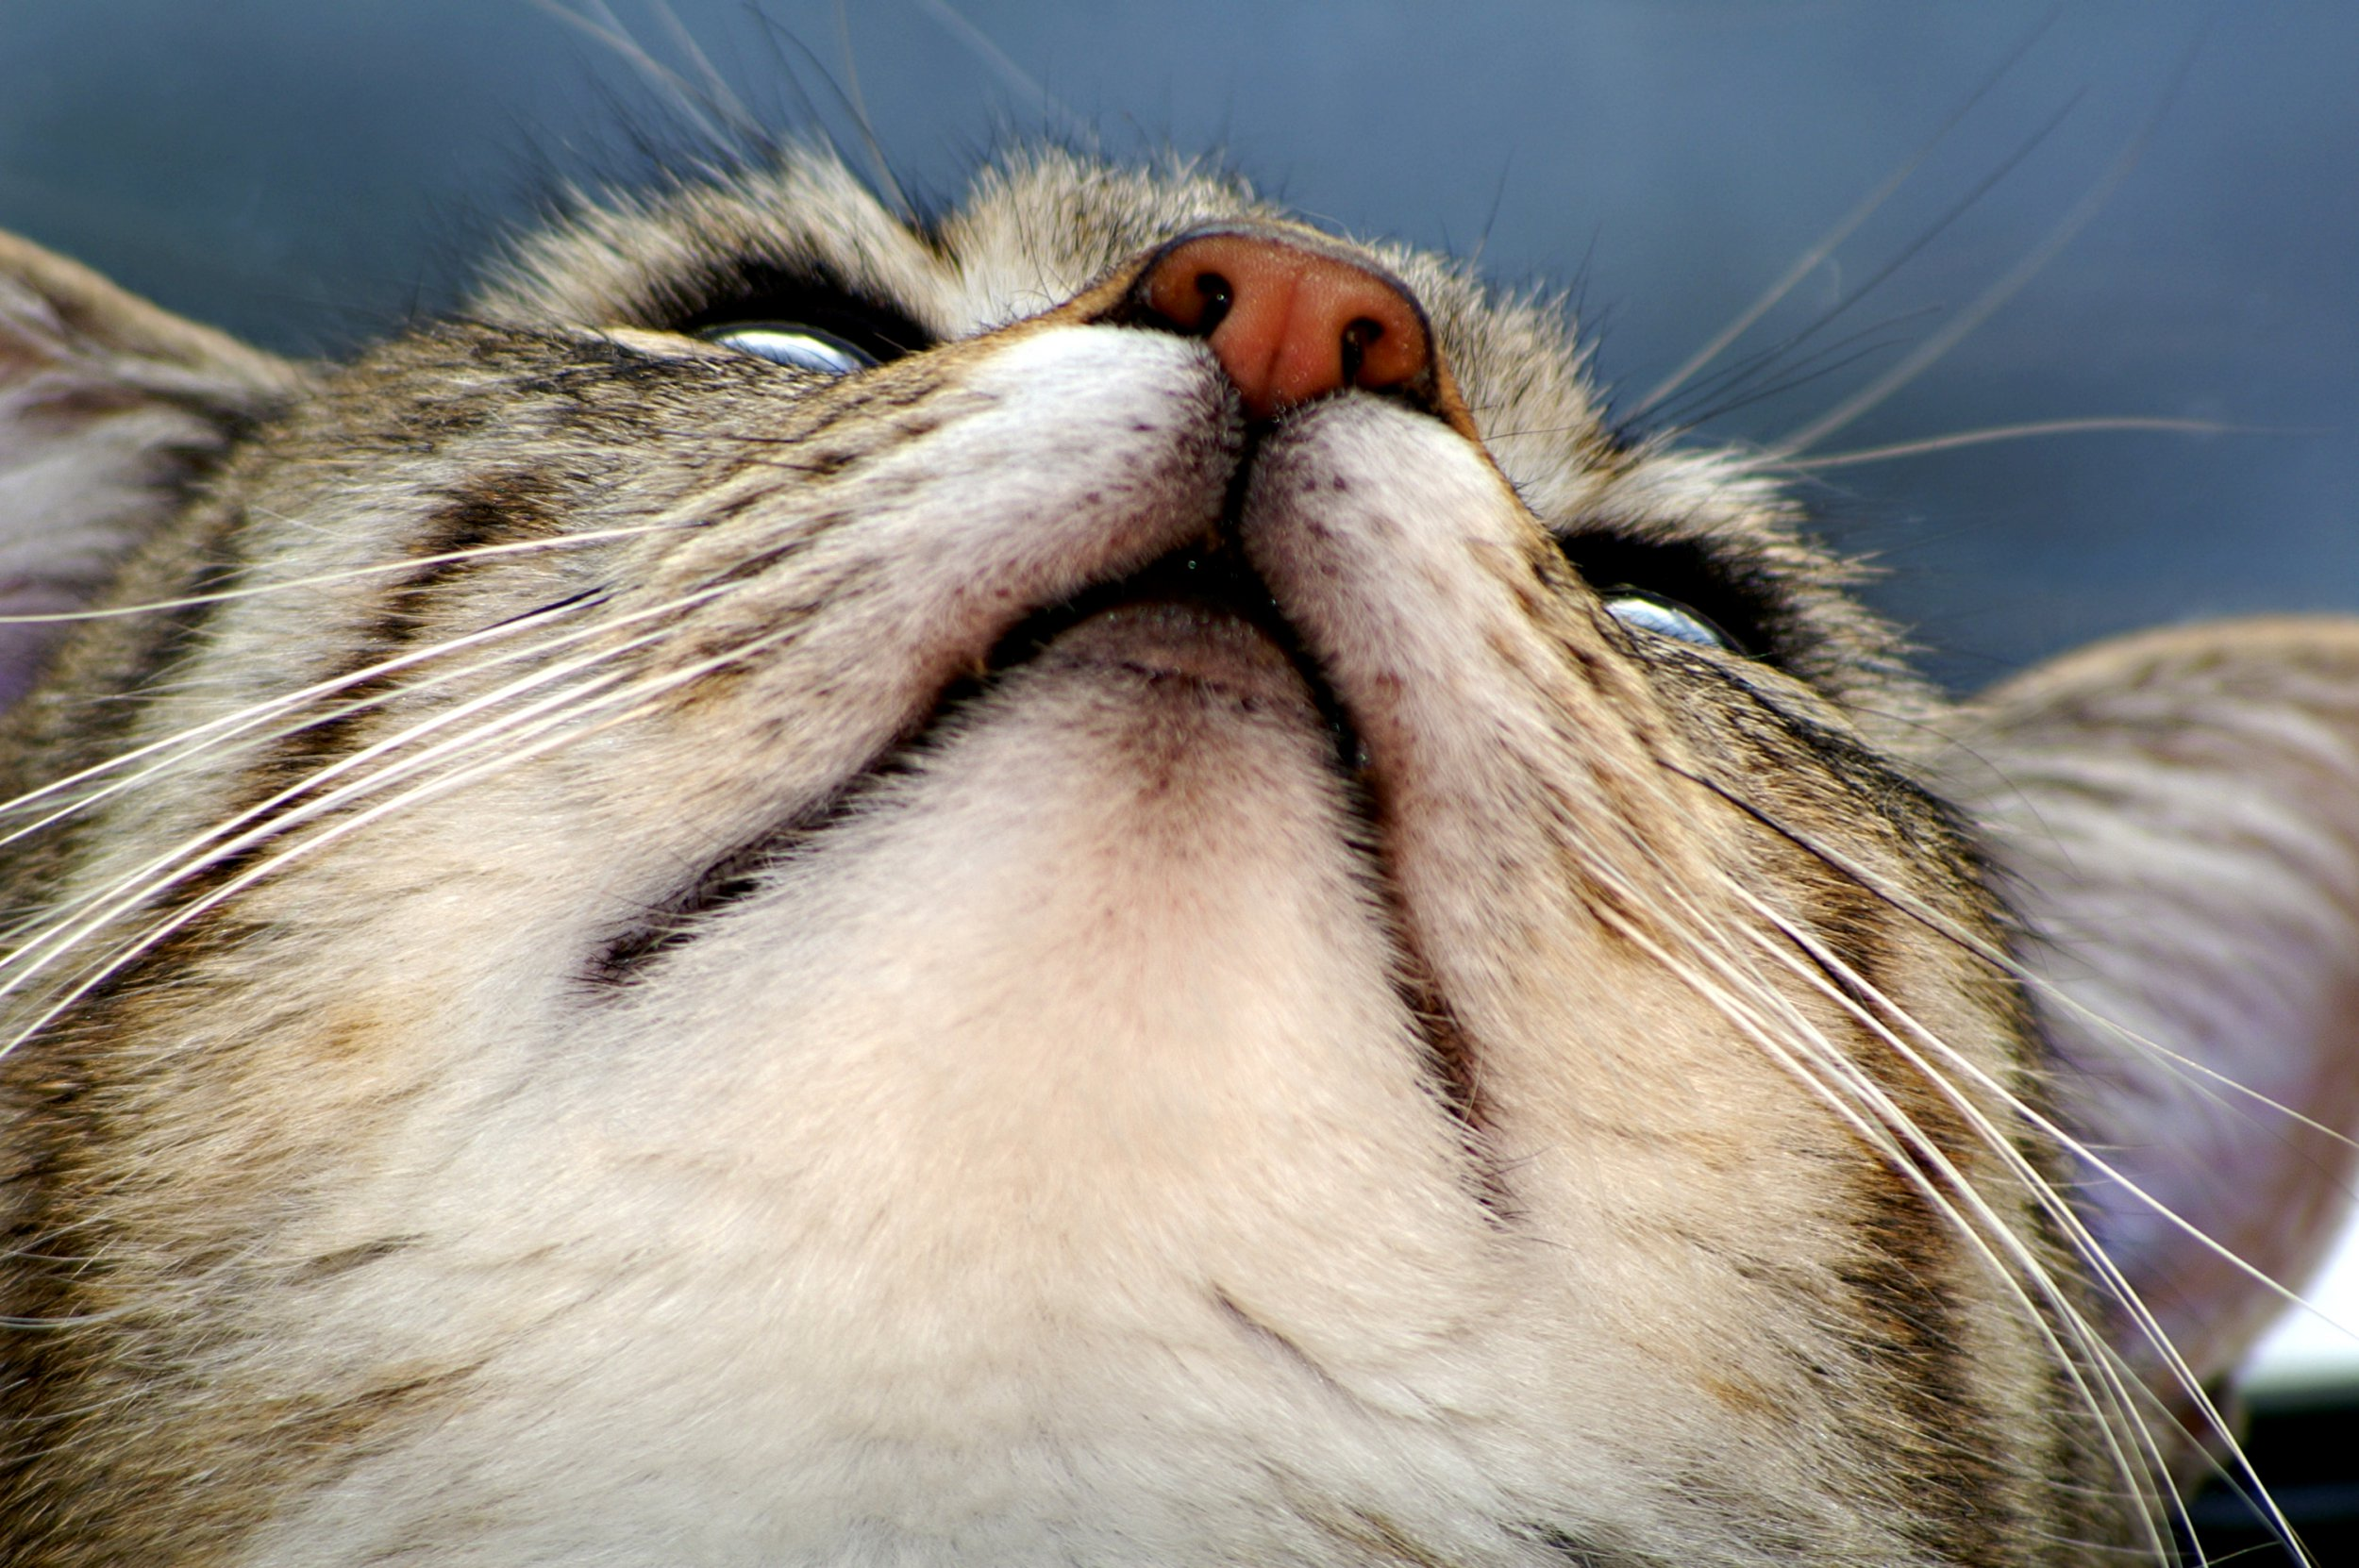 Cat from beneath; Shutterstock ID 1030763; Purchase Order: -